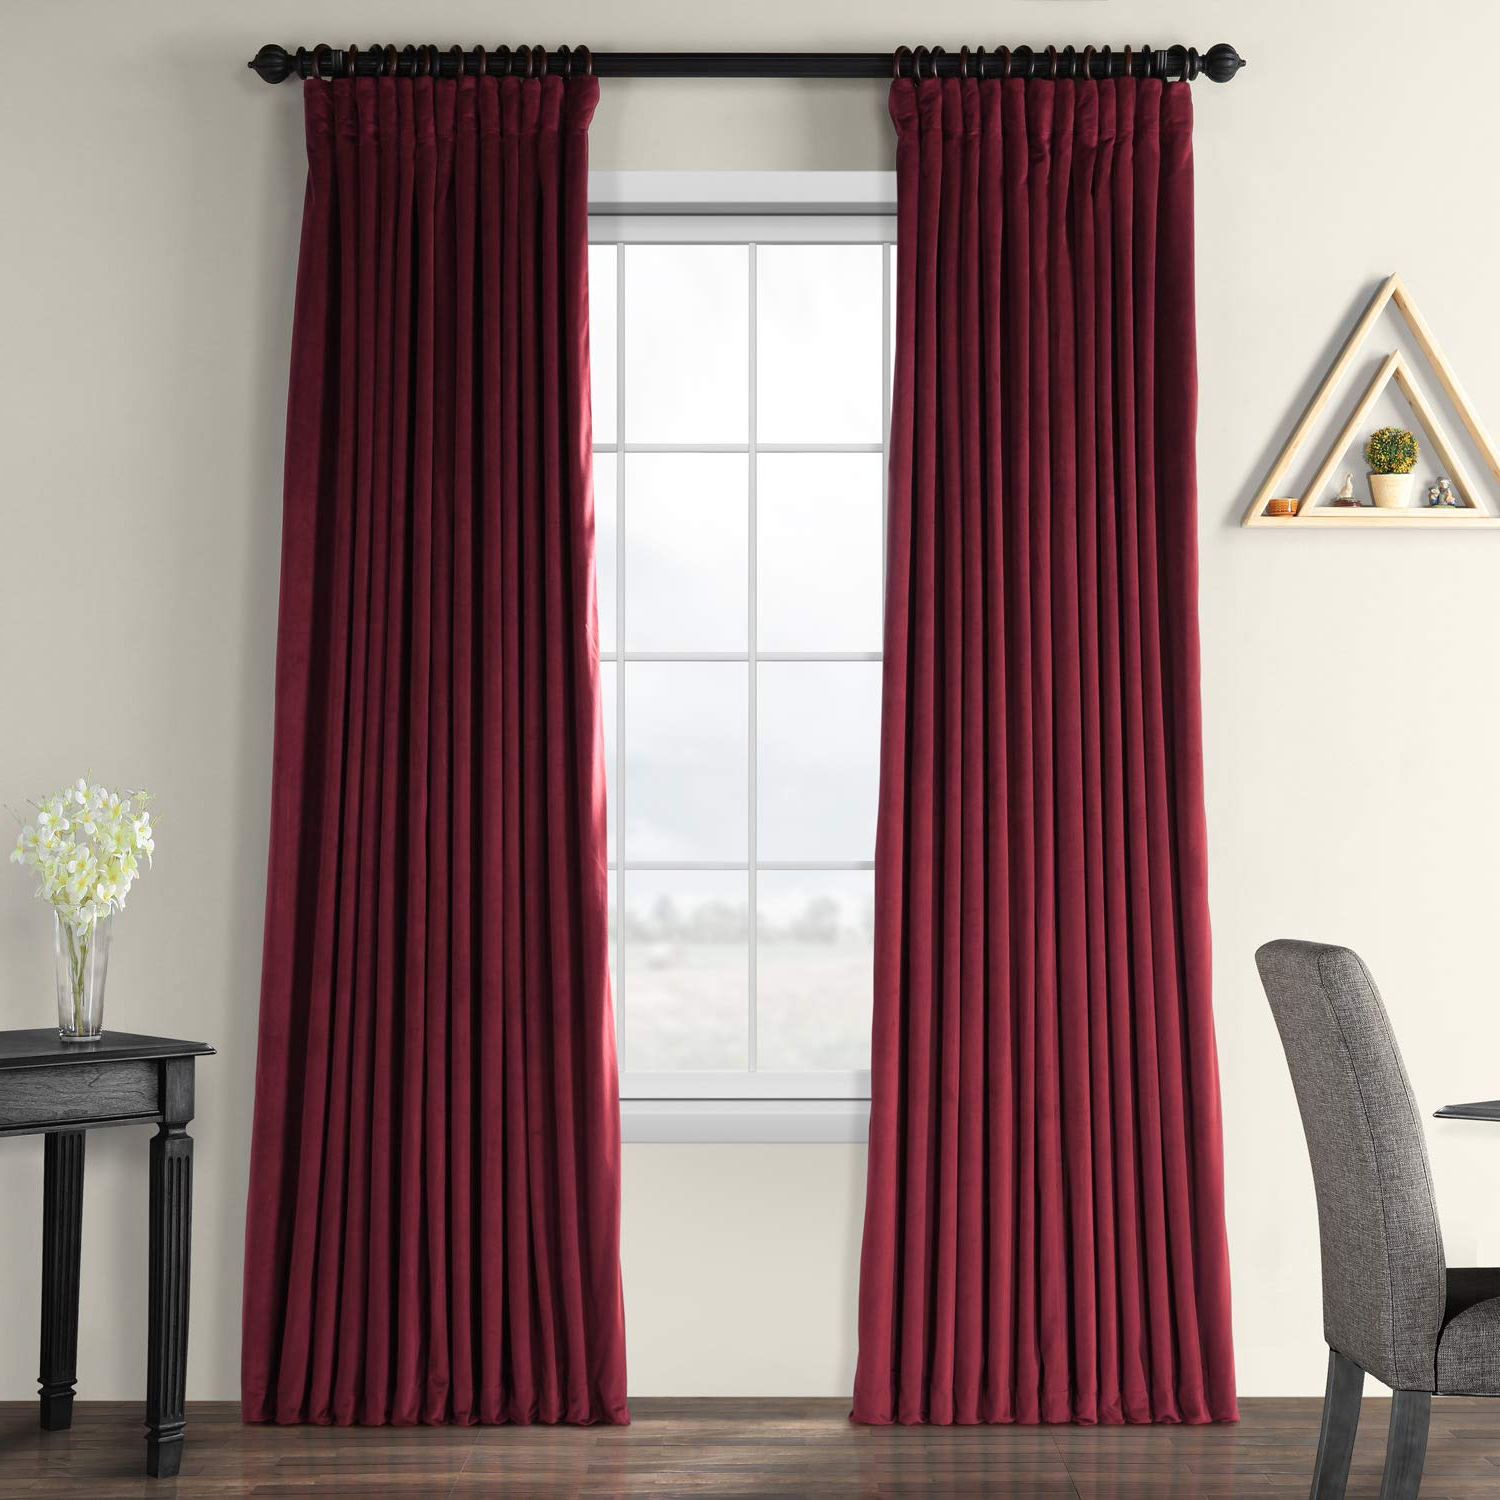 Well Liked Signature Ivory Velvet Blackout Single Curtain Panels For Half Price Drapes Vpch Vet1216 108 Signature Doublewide Blackout Velvet Curtain, Burgundy, 100 X (View 11 of 20)